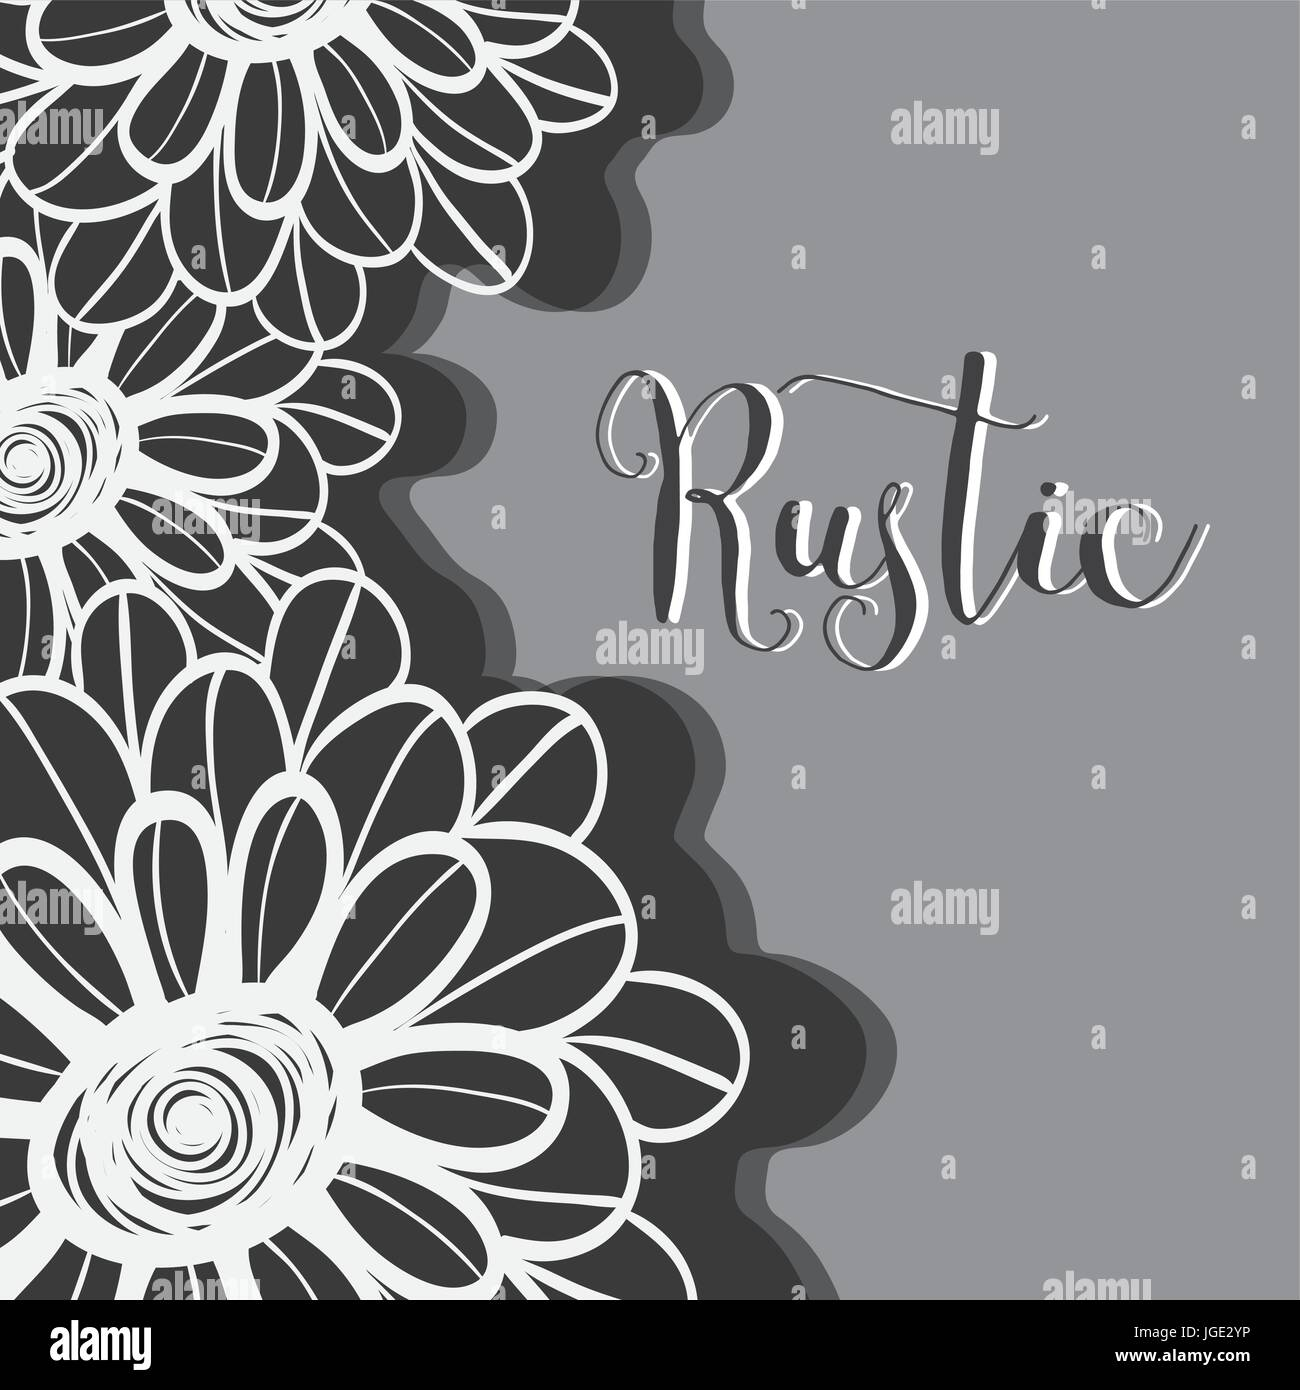 rustic flowers with petals design background - Stock Image